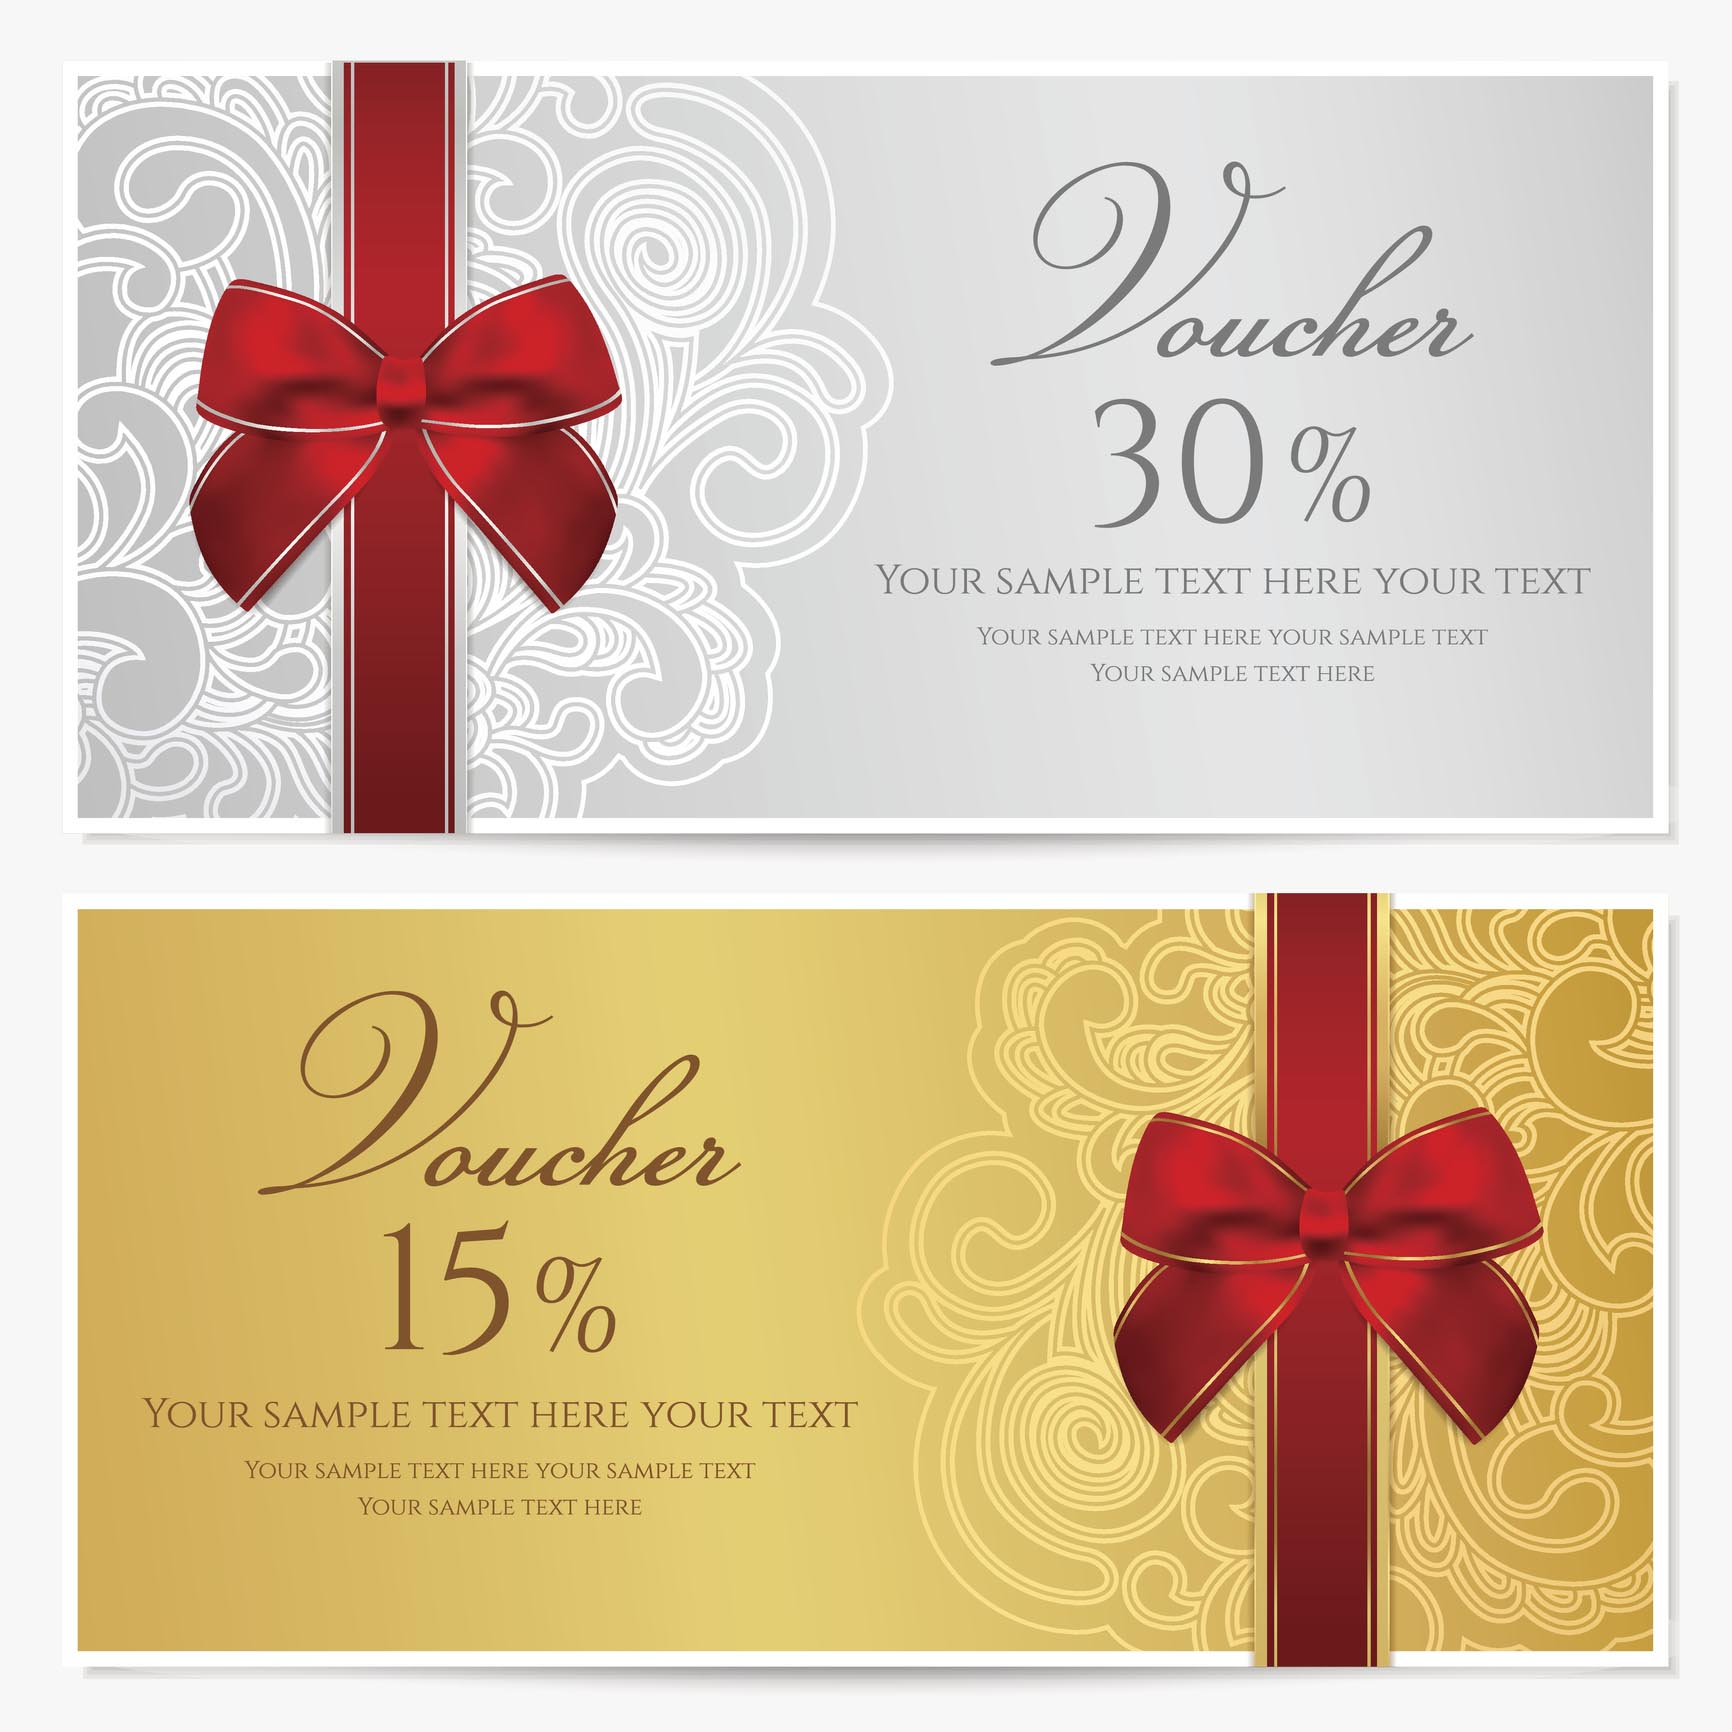 Create Limited-Time Collateral with Vector Graphics.jpg